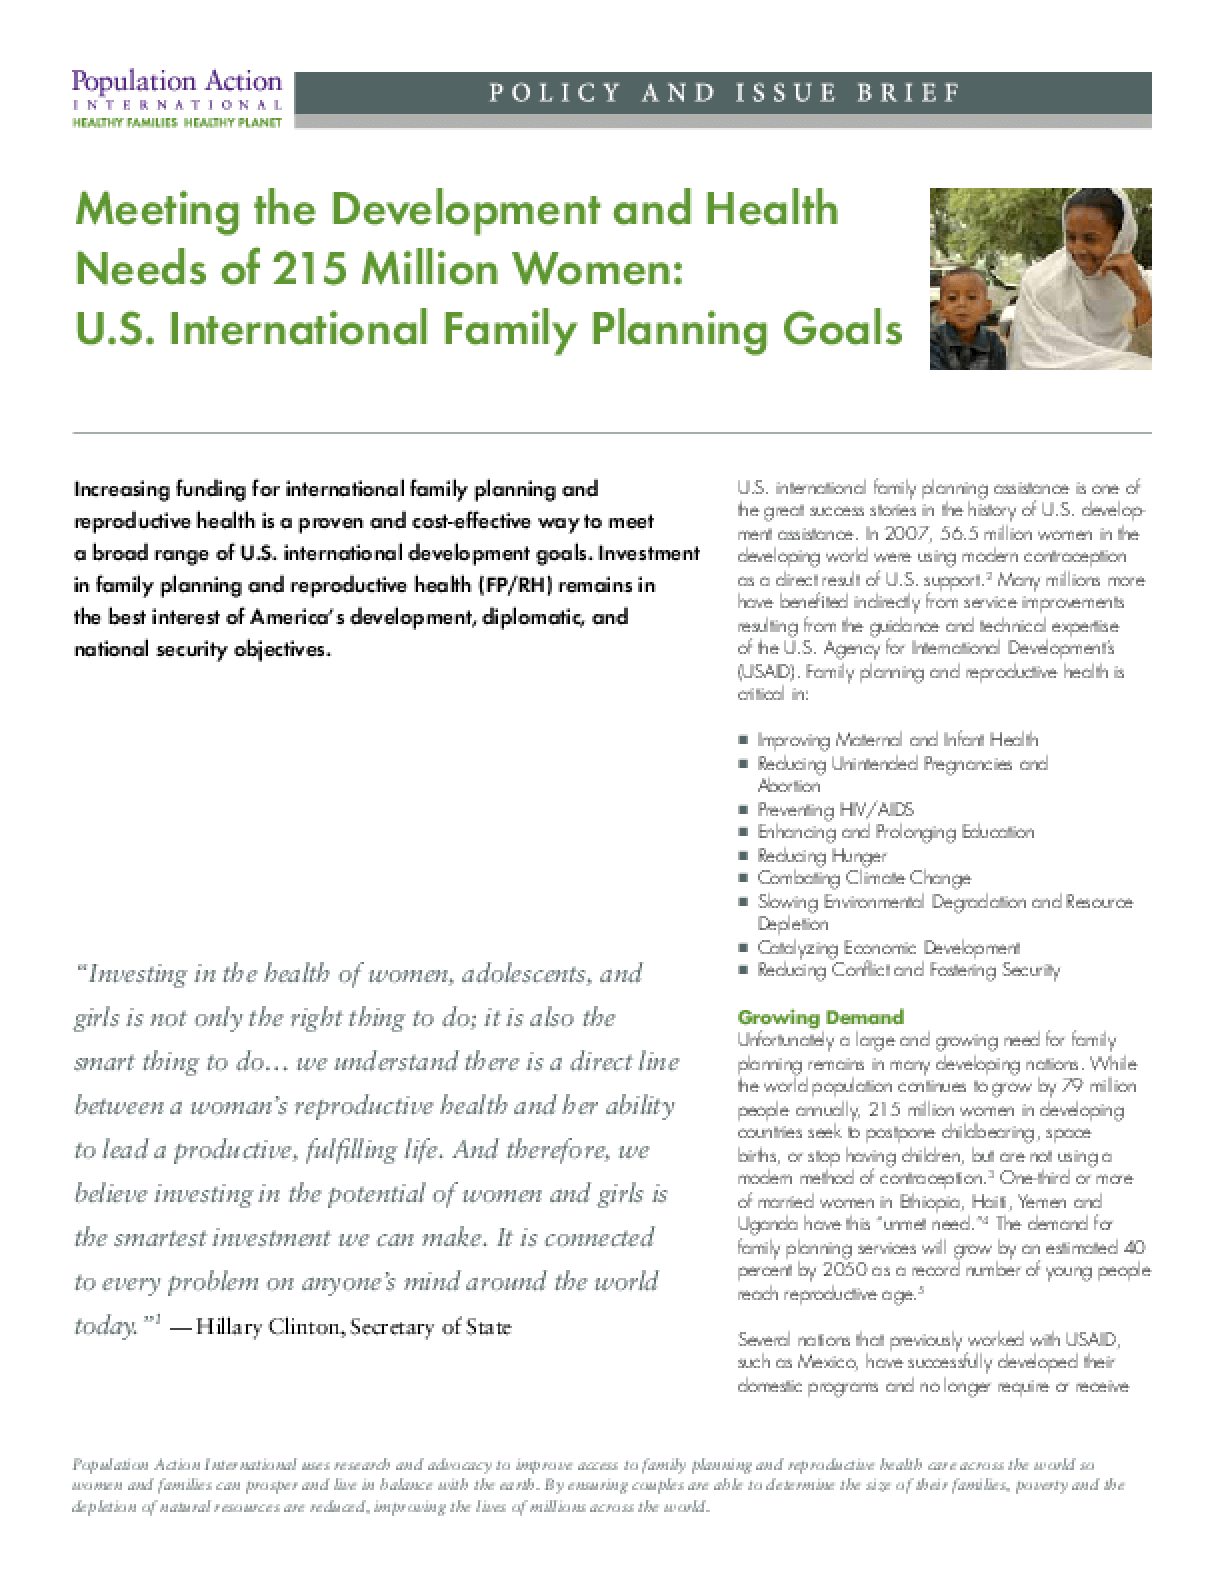 Meeting the Development and Health Needs of 215 Million Women: U.S. International Family Planning Goals